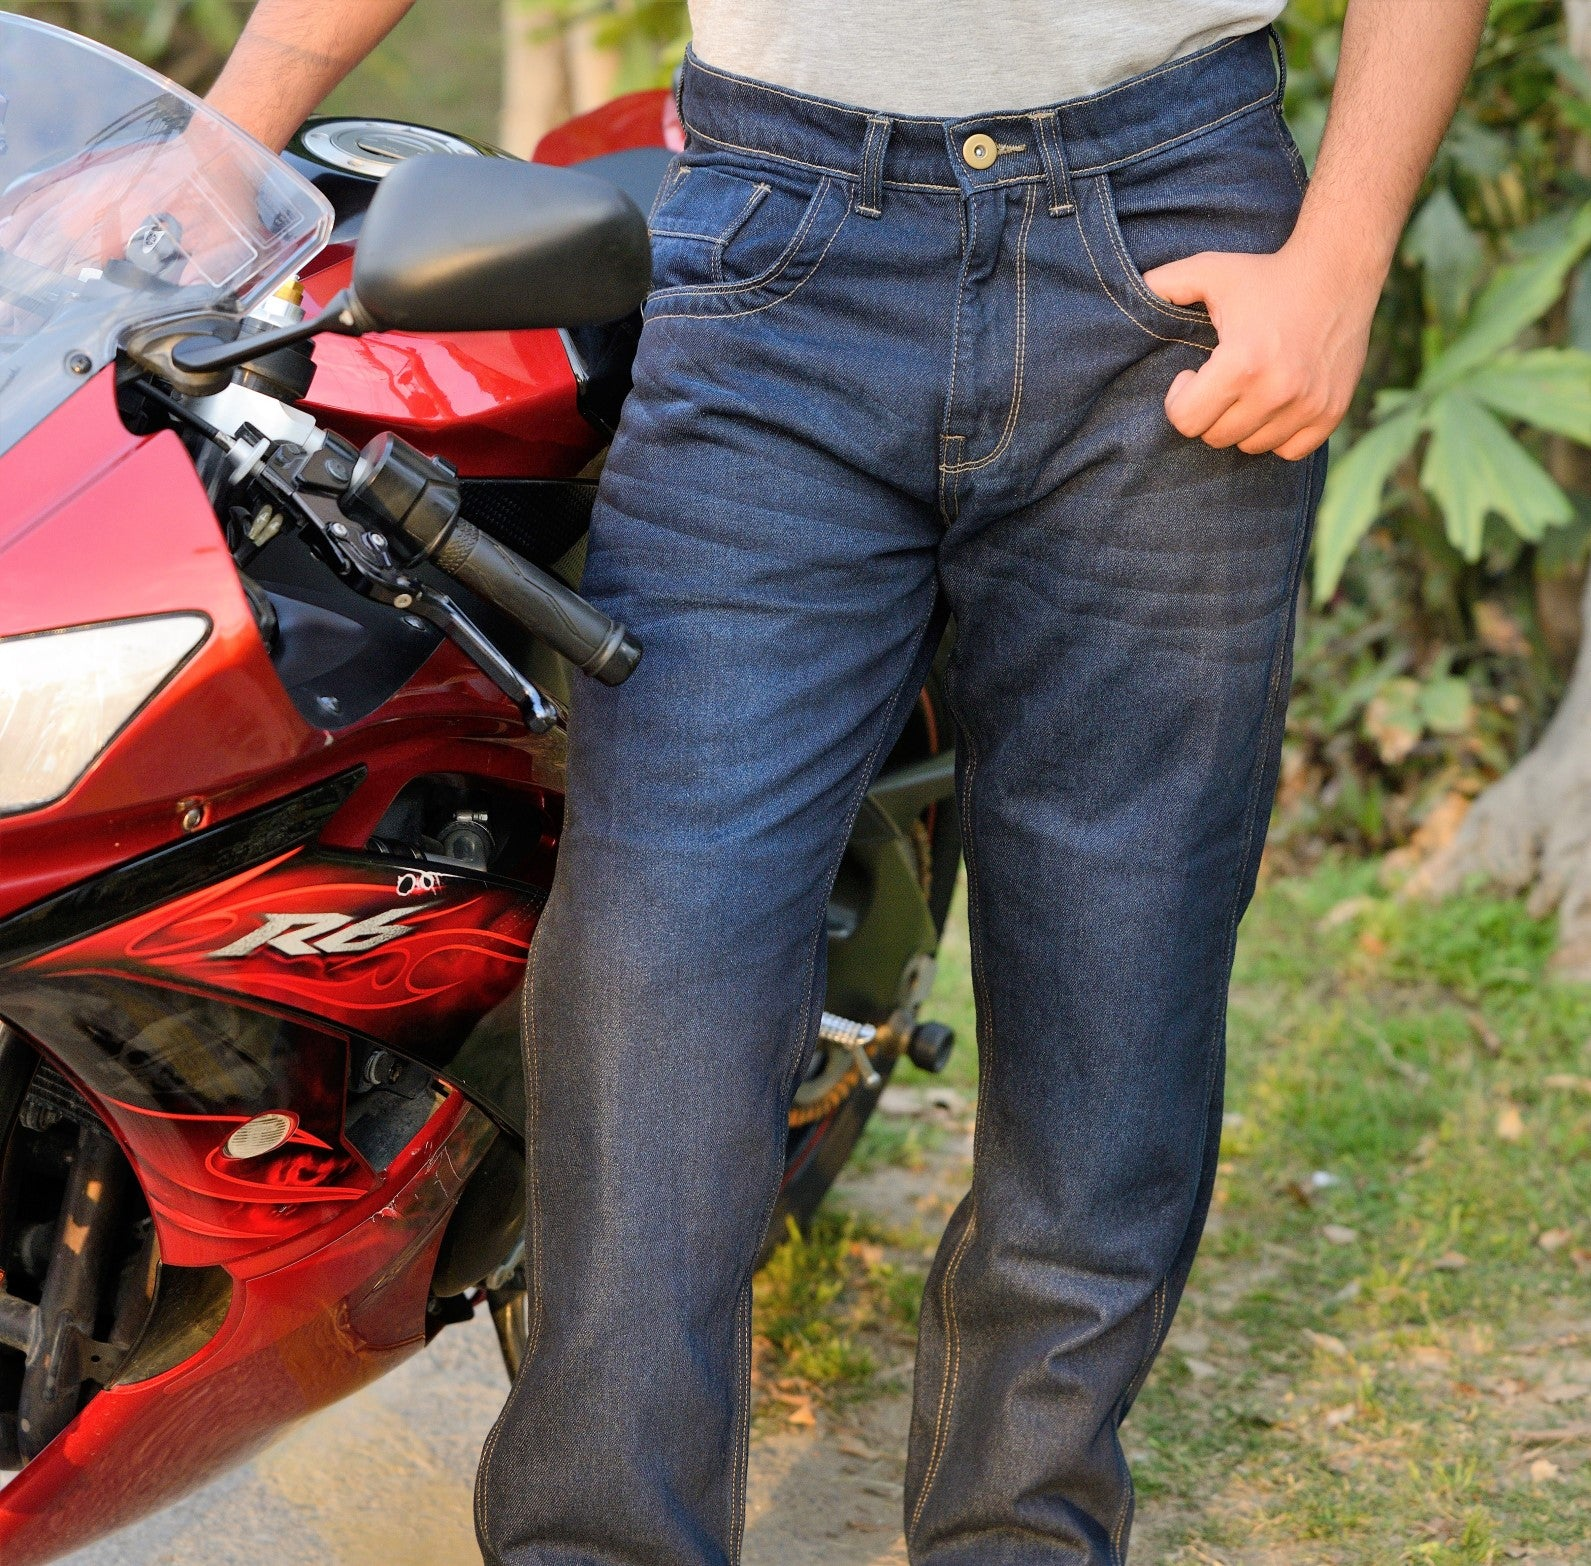 EVOQE Motorcycle Jeans Feature Forcefield CE Level 2 Isolator Upgrade Knee & Hip Armour